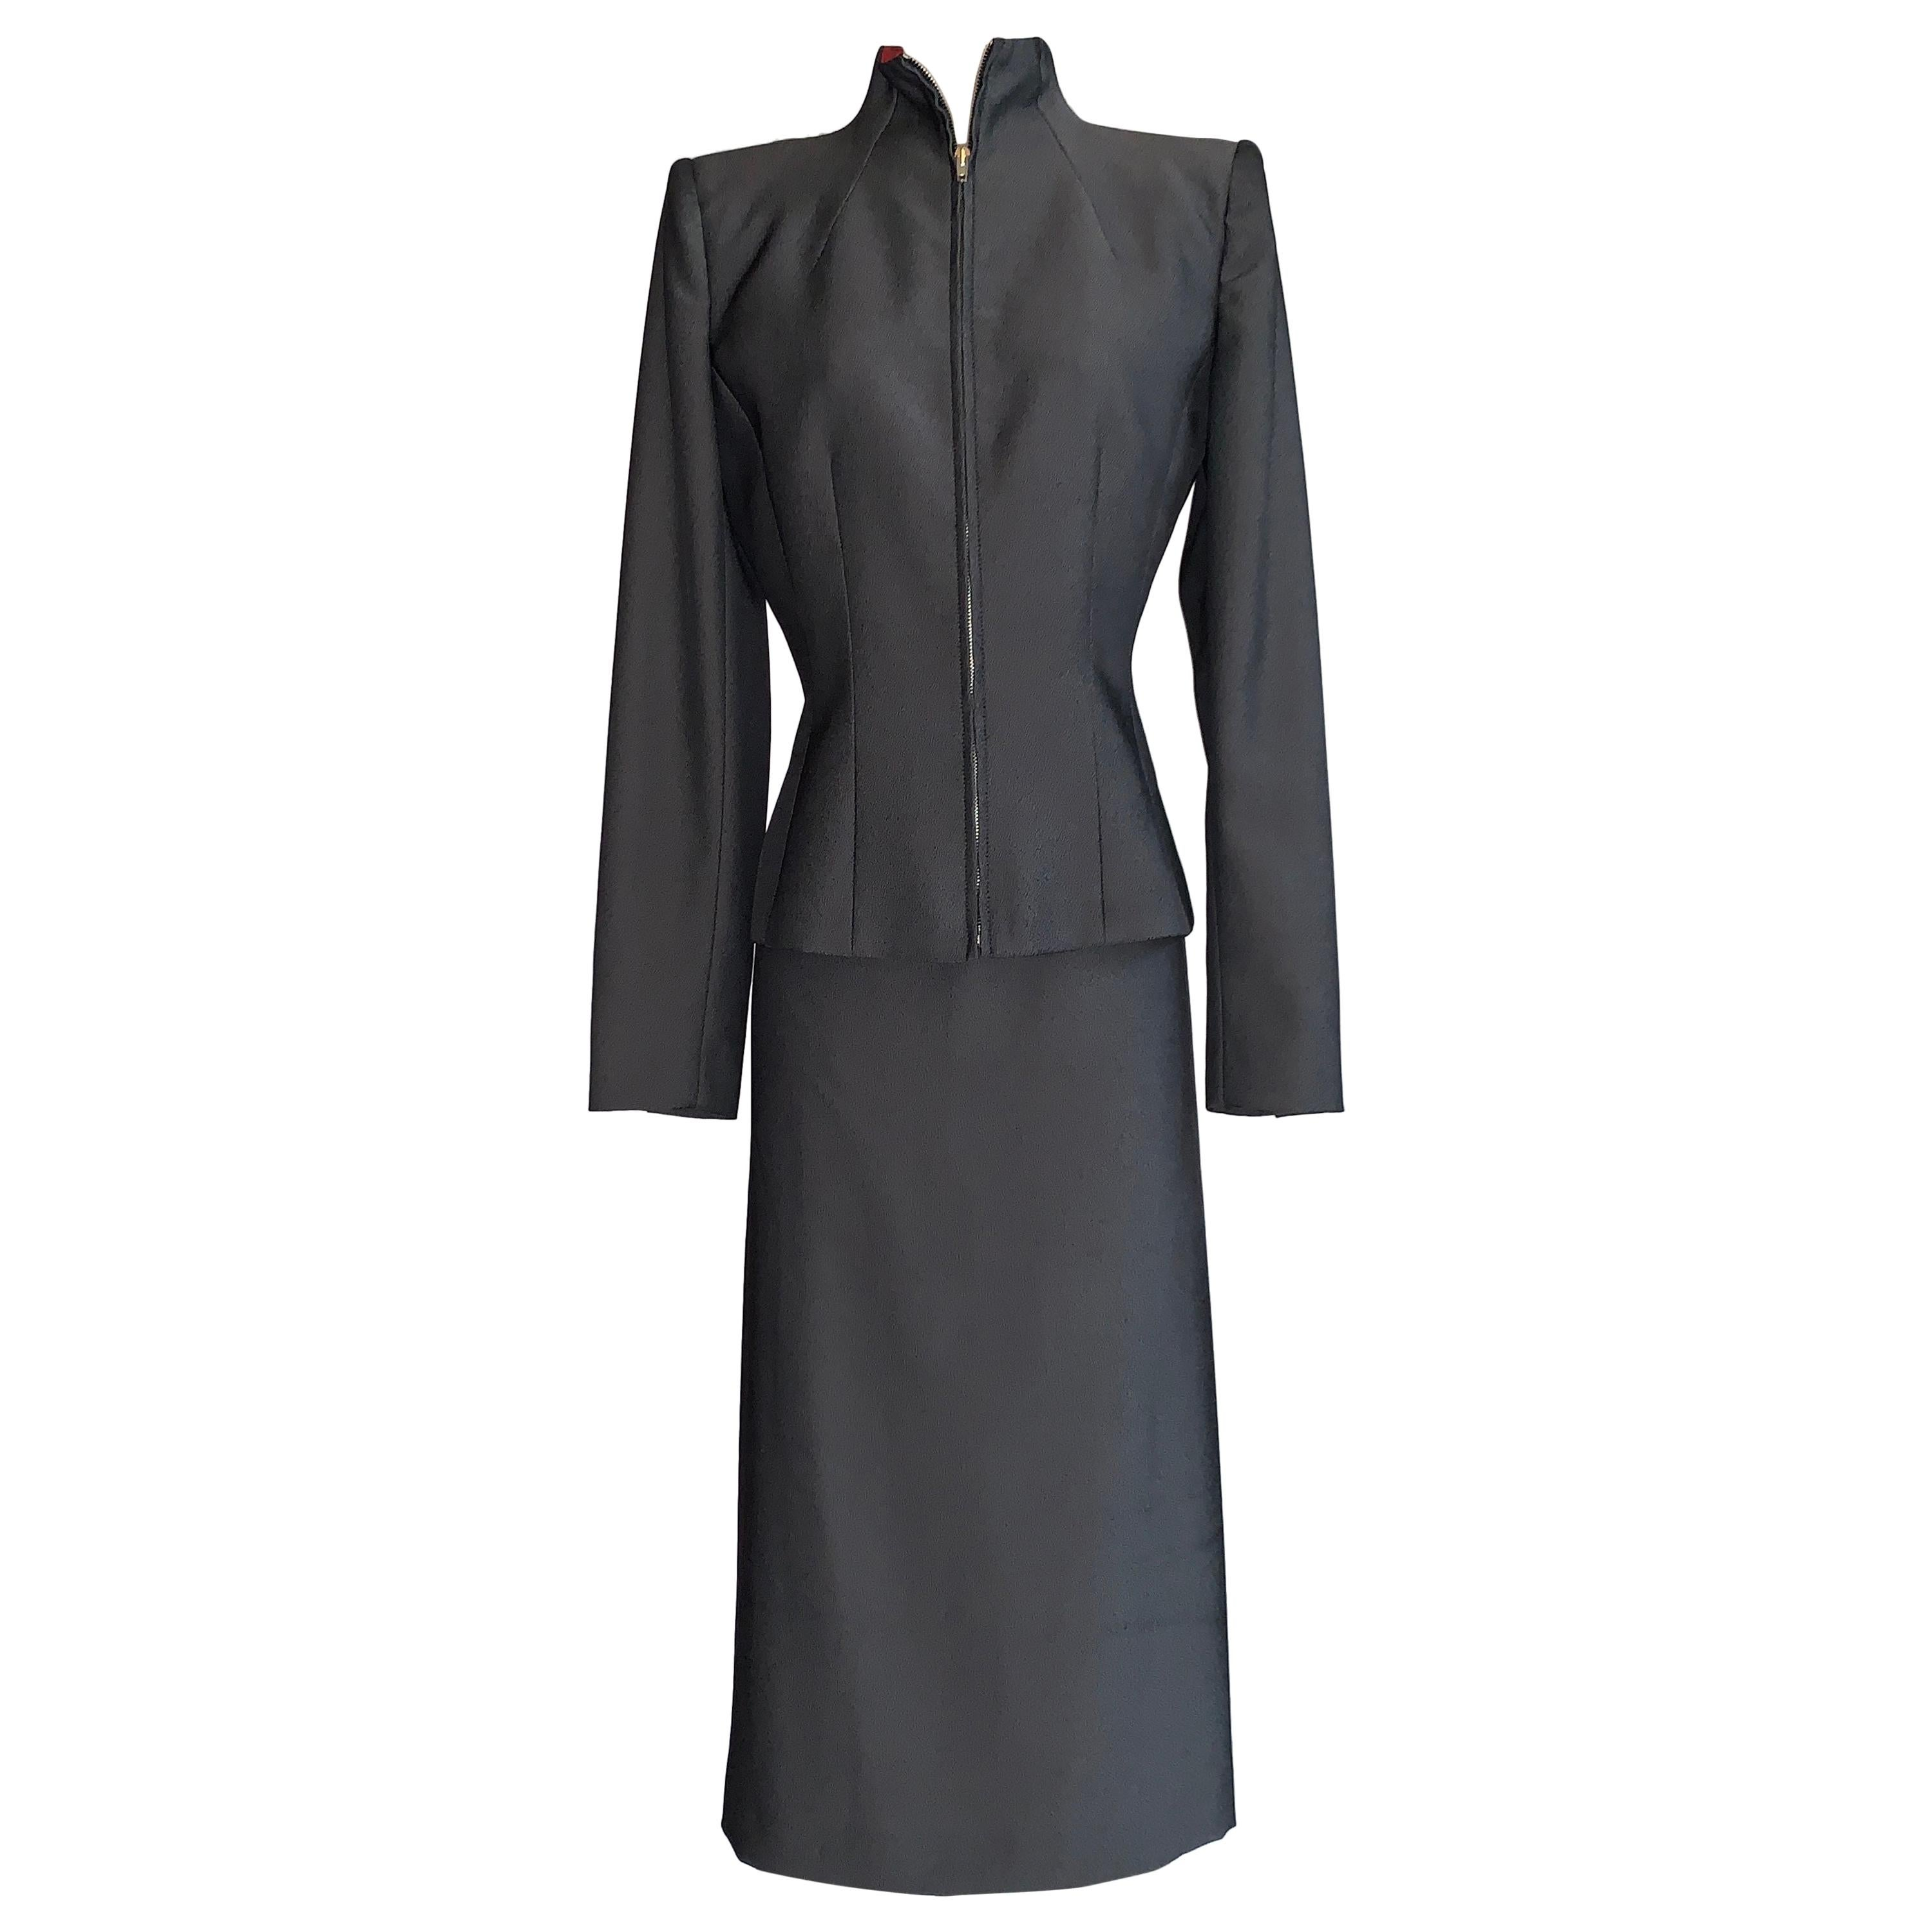 Alexander Mcqueen 1998 Joan Skirt Suit with Zippered Jacket and Logo Red Lining